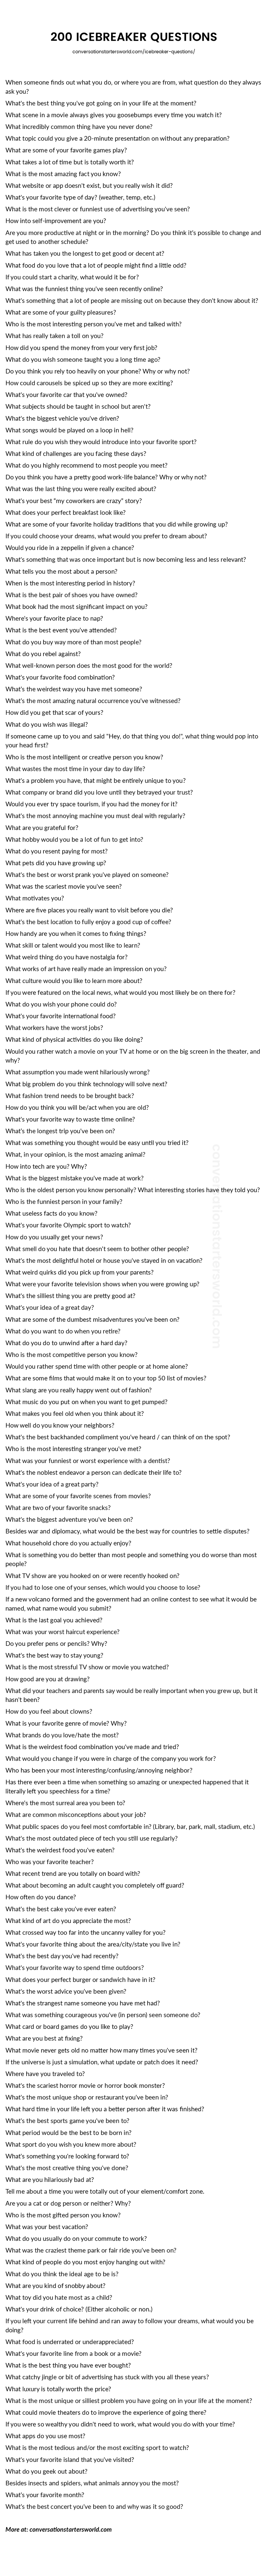 200 Icebreaker questions - The only list you'll need to